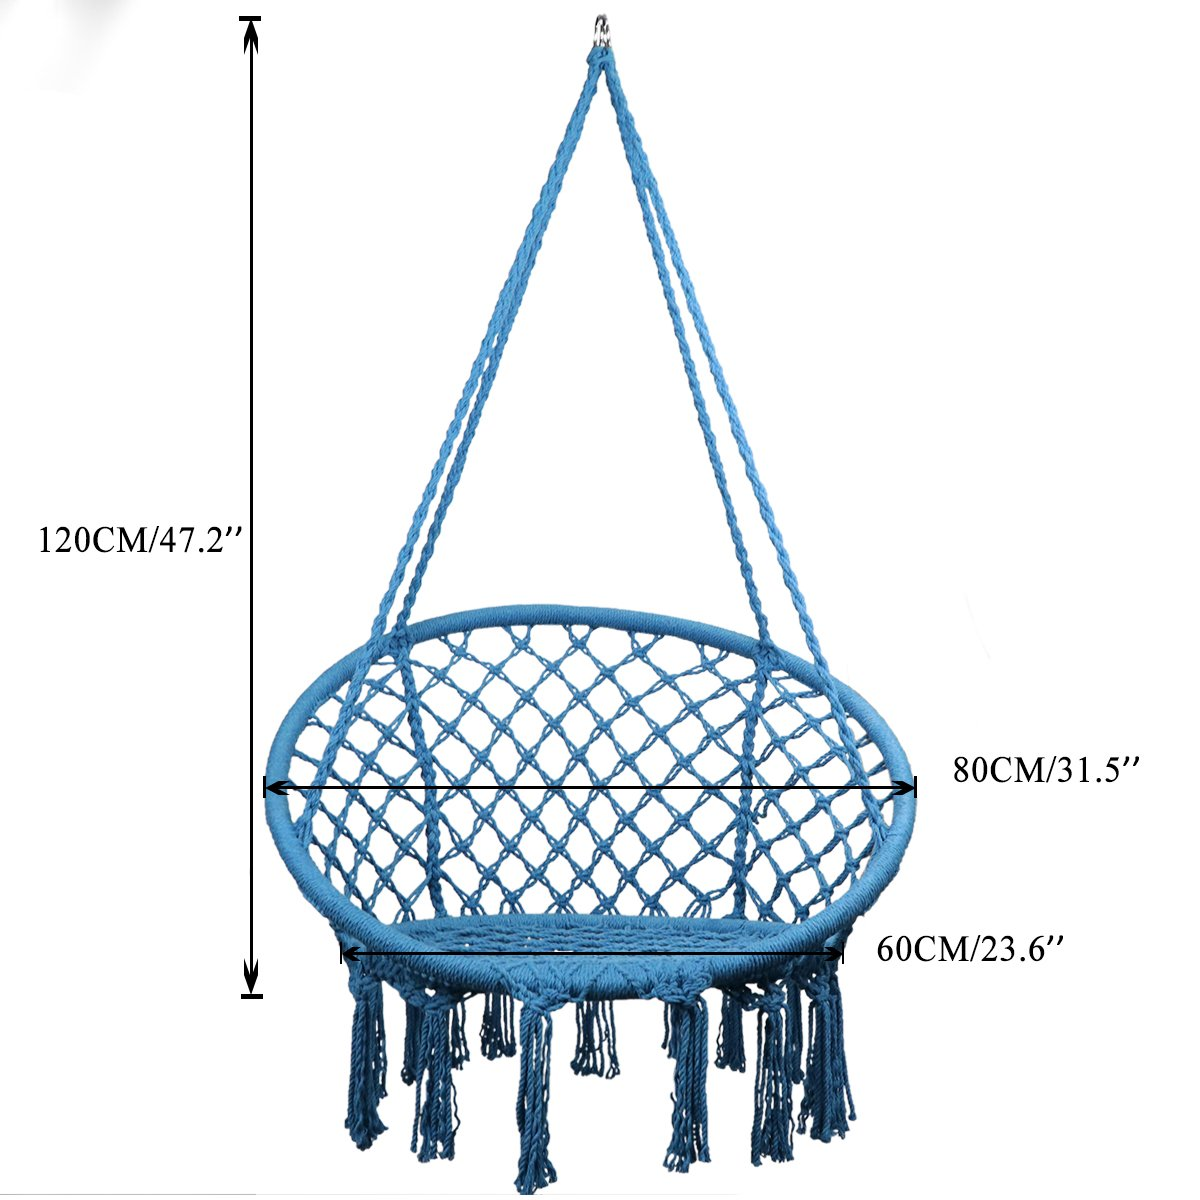 Terrific Topway Hammock Chair Macrame Swing 330 Pound Capacity Pabps2019 Chair Design Images Pabps2019Com